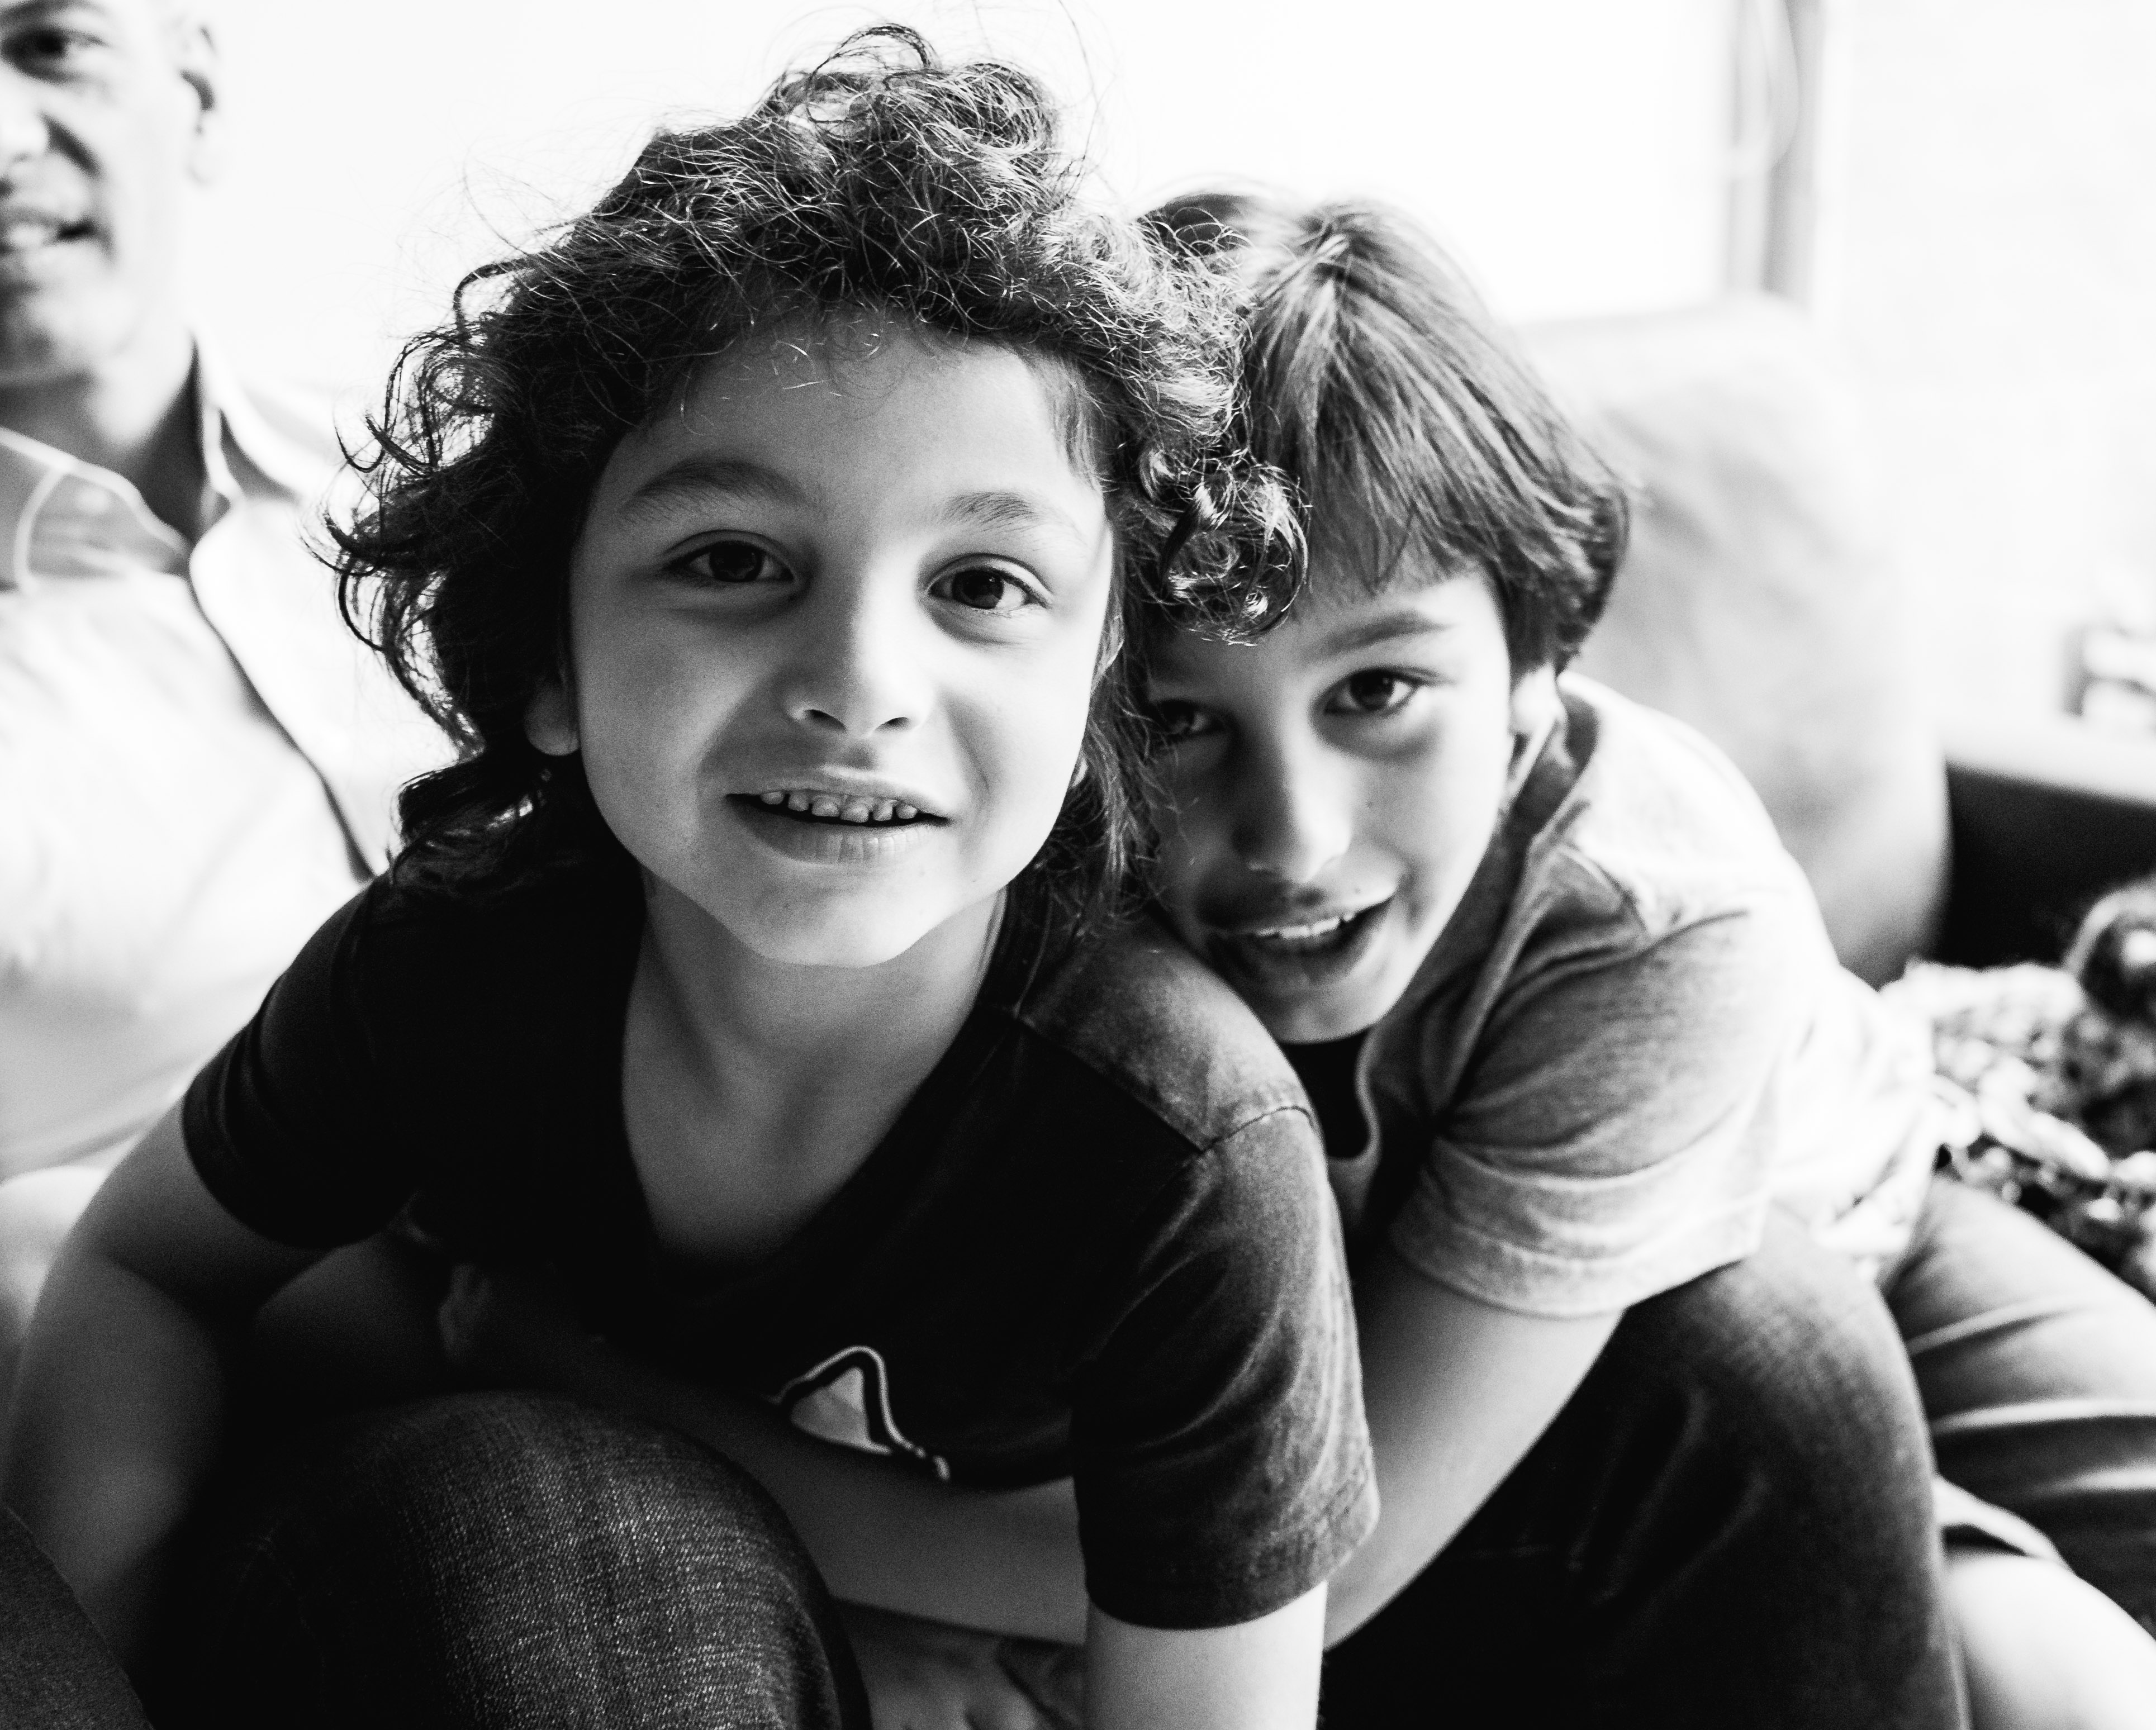 in-home session photograph of brothers cuddling and looking straight into camera lens in Carlton North, Melbourne, Australia